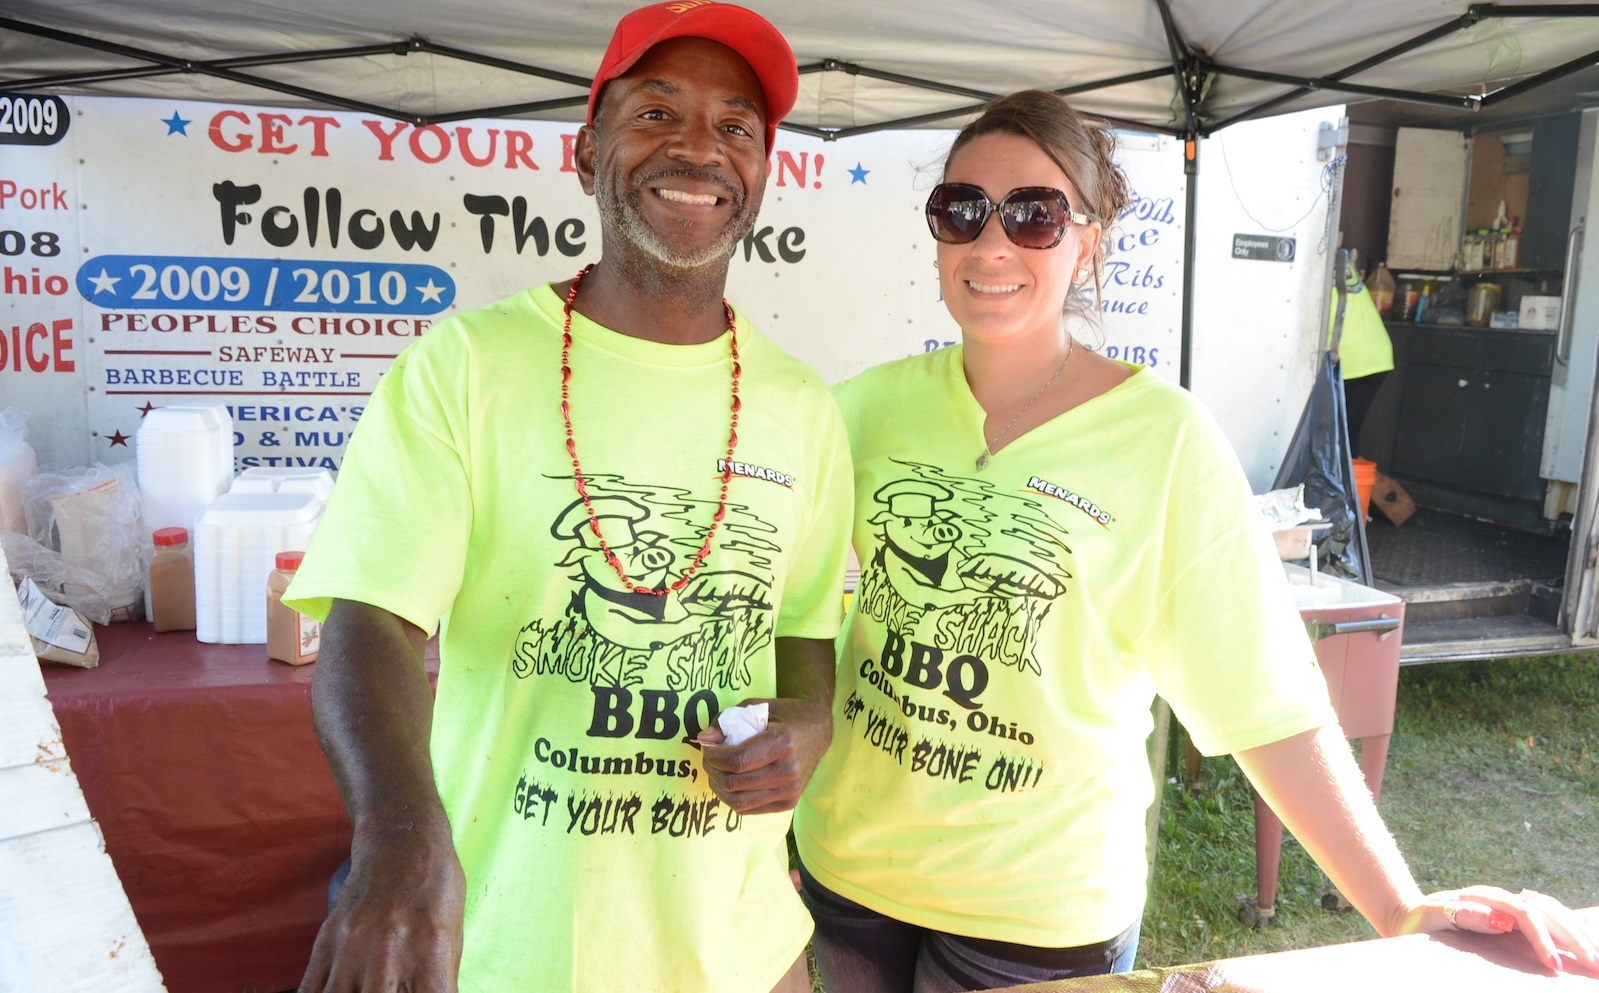 Barbecue specialists from across the U.S. converge upon the Great Pumpkin Festival in Clarence. (Nancy J. Parisi/Special to The News)